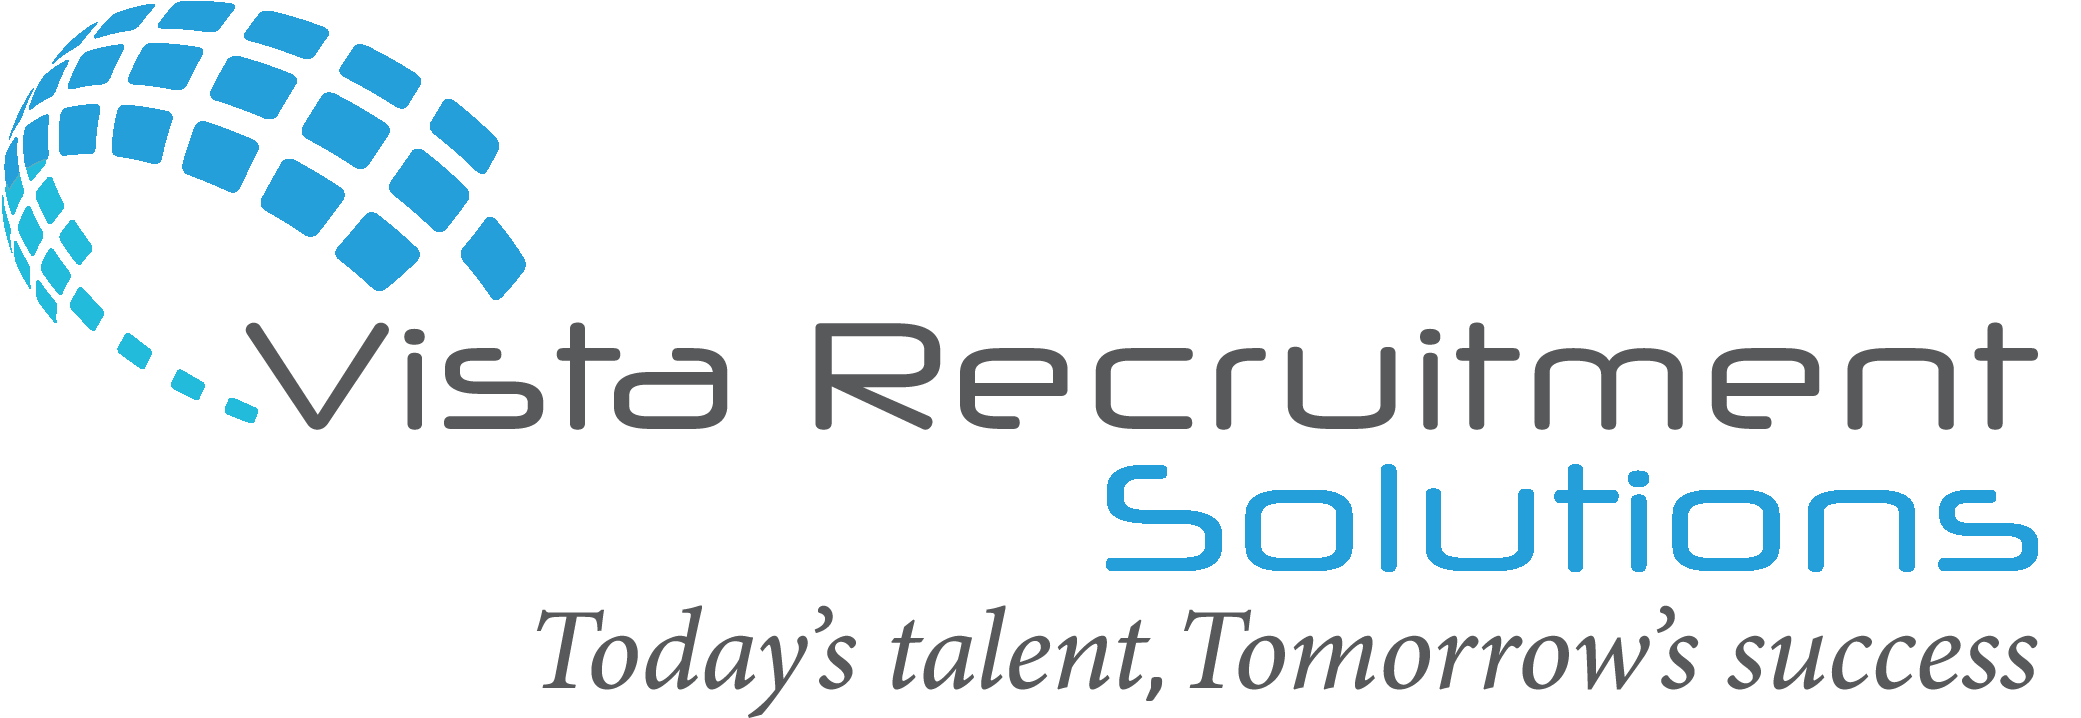 Vista Recruitment Solutions